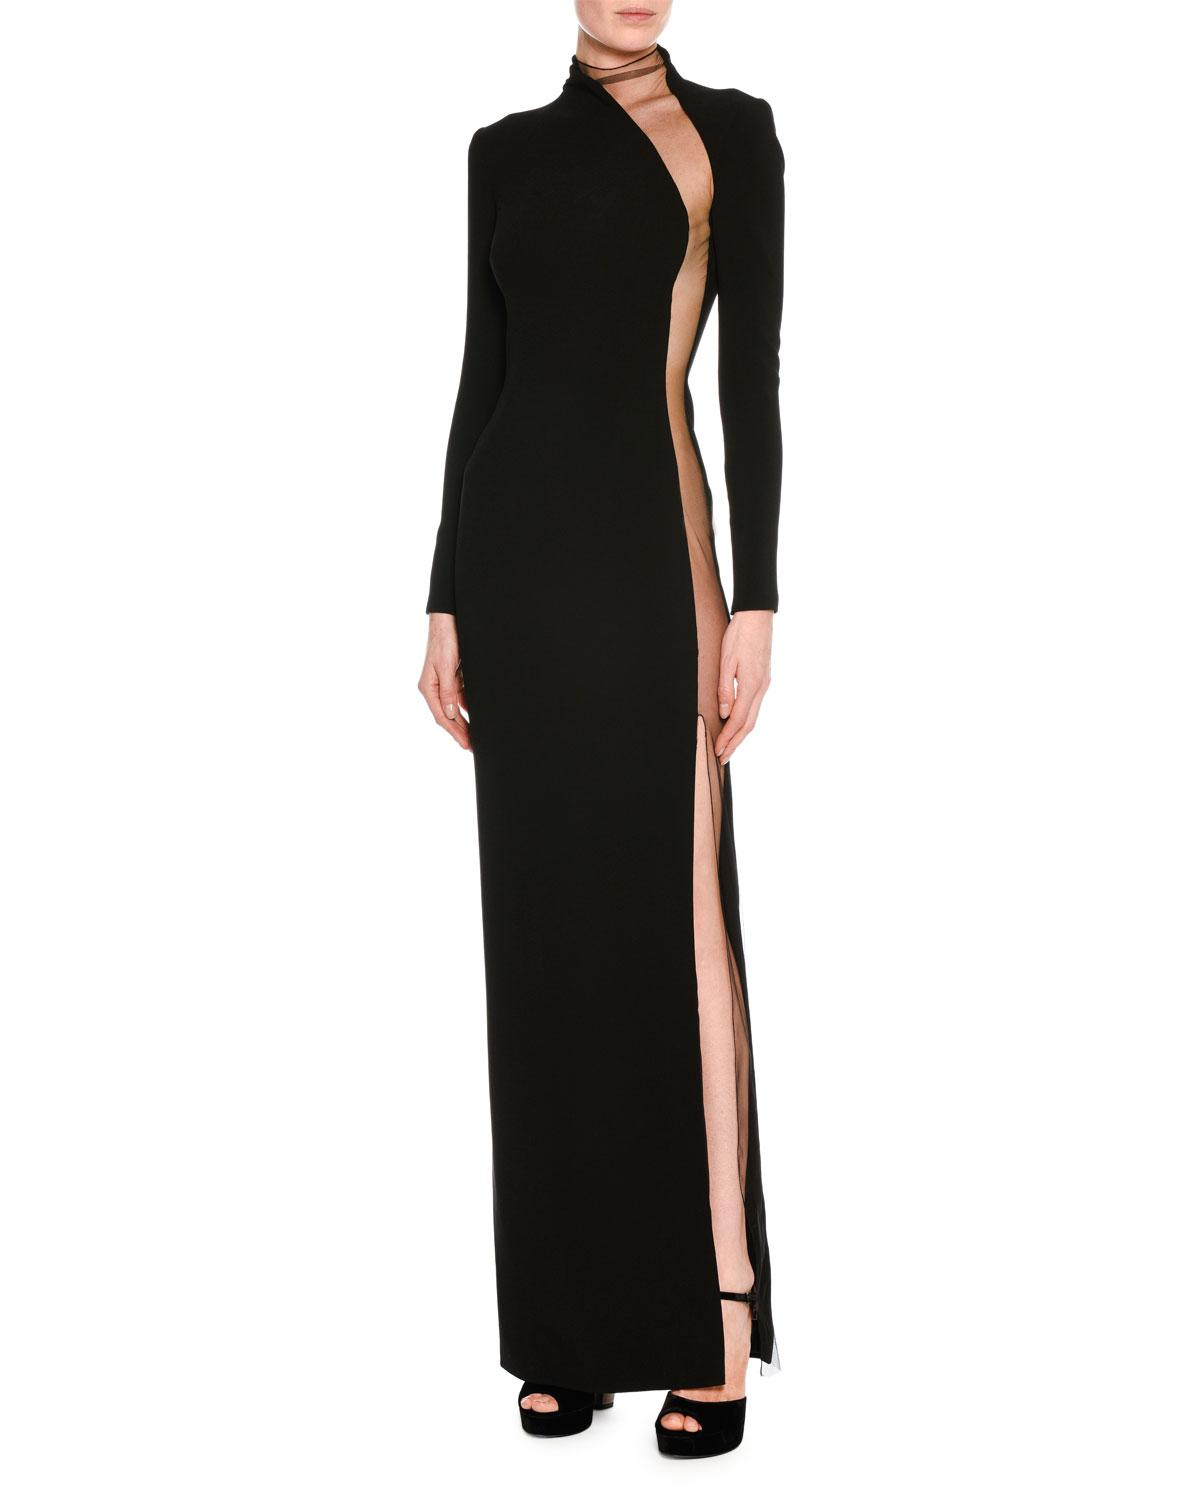 Tom Ford Illusion-panel Silk Long-sleeve Gown in Black - Lyst